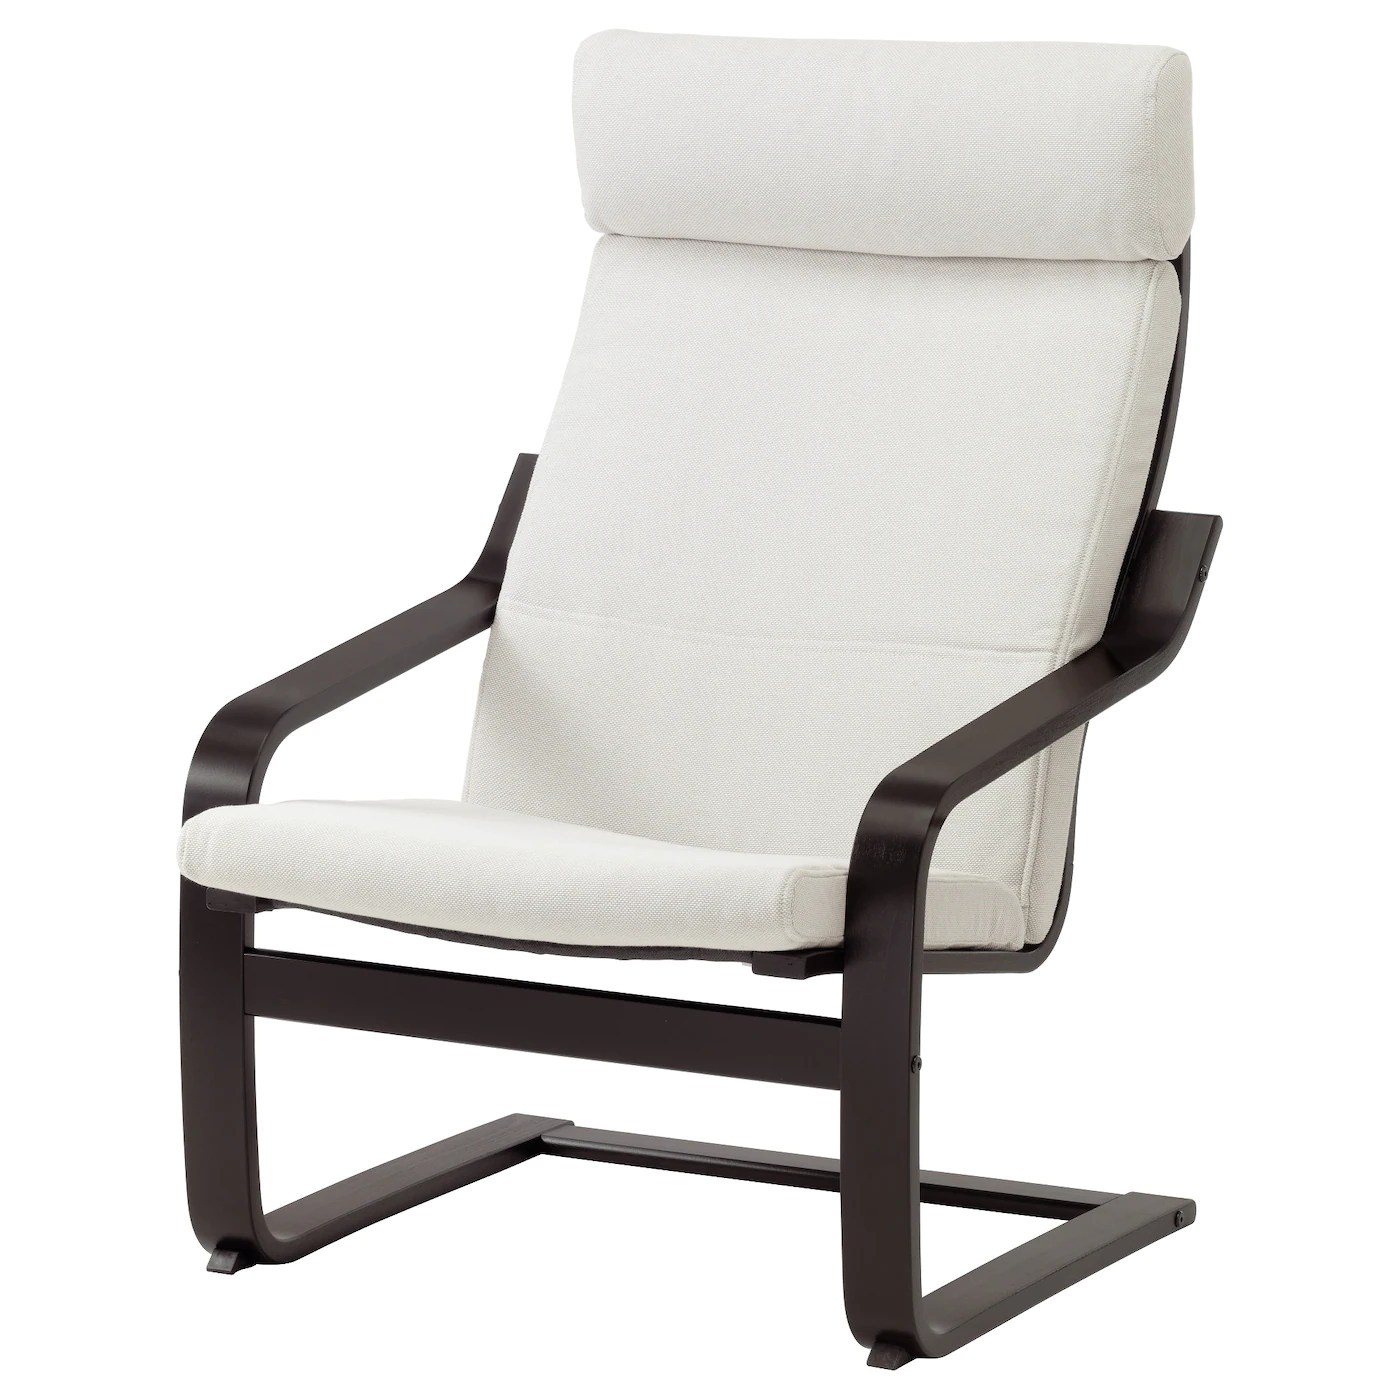 white lounge chair covers best high for small spaces poÄng armchair black brown finnsta ikea